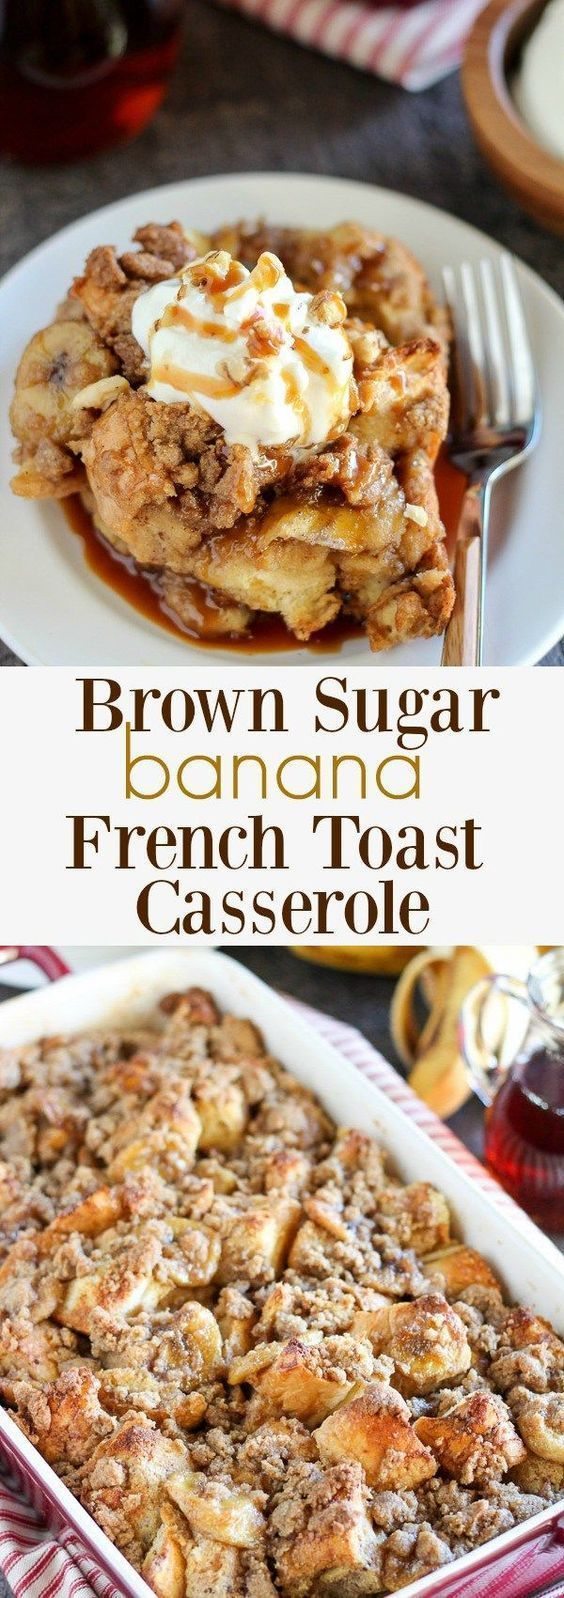 Photo of Brown Sugar Banana French Toast Casserole